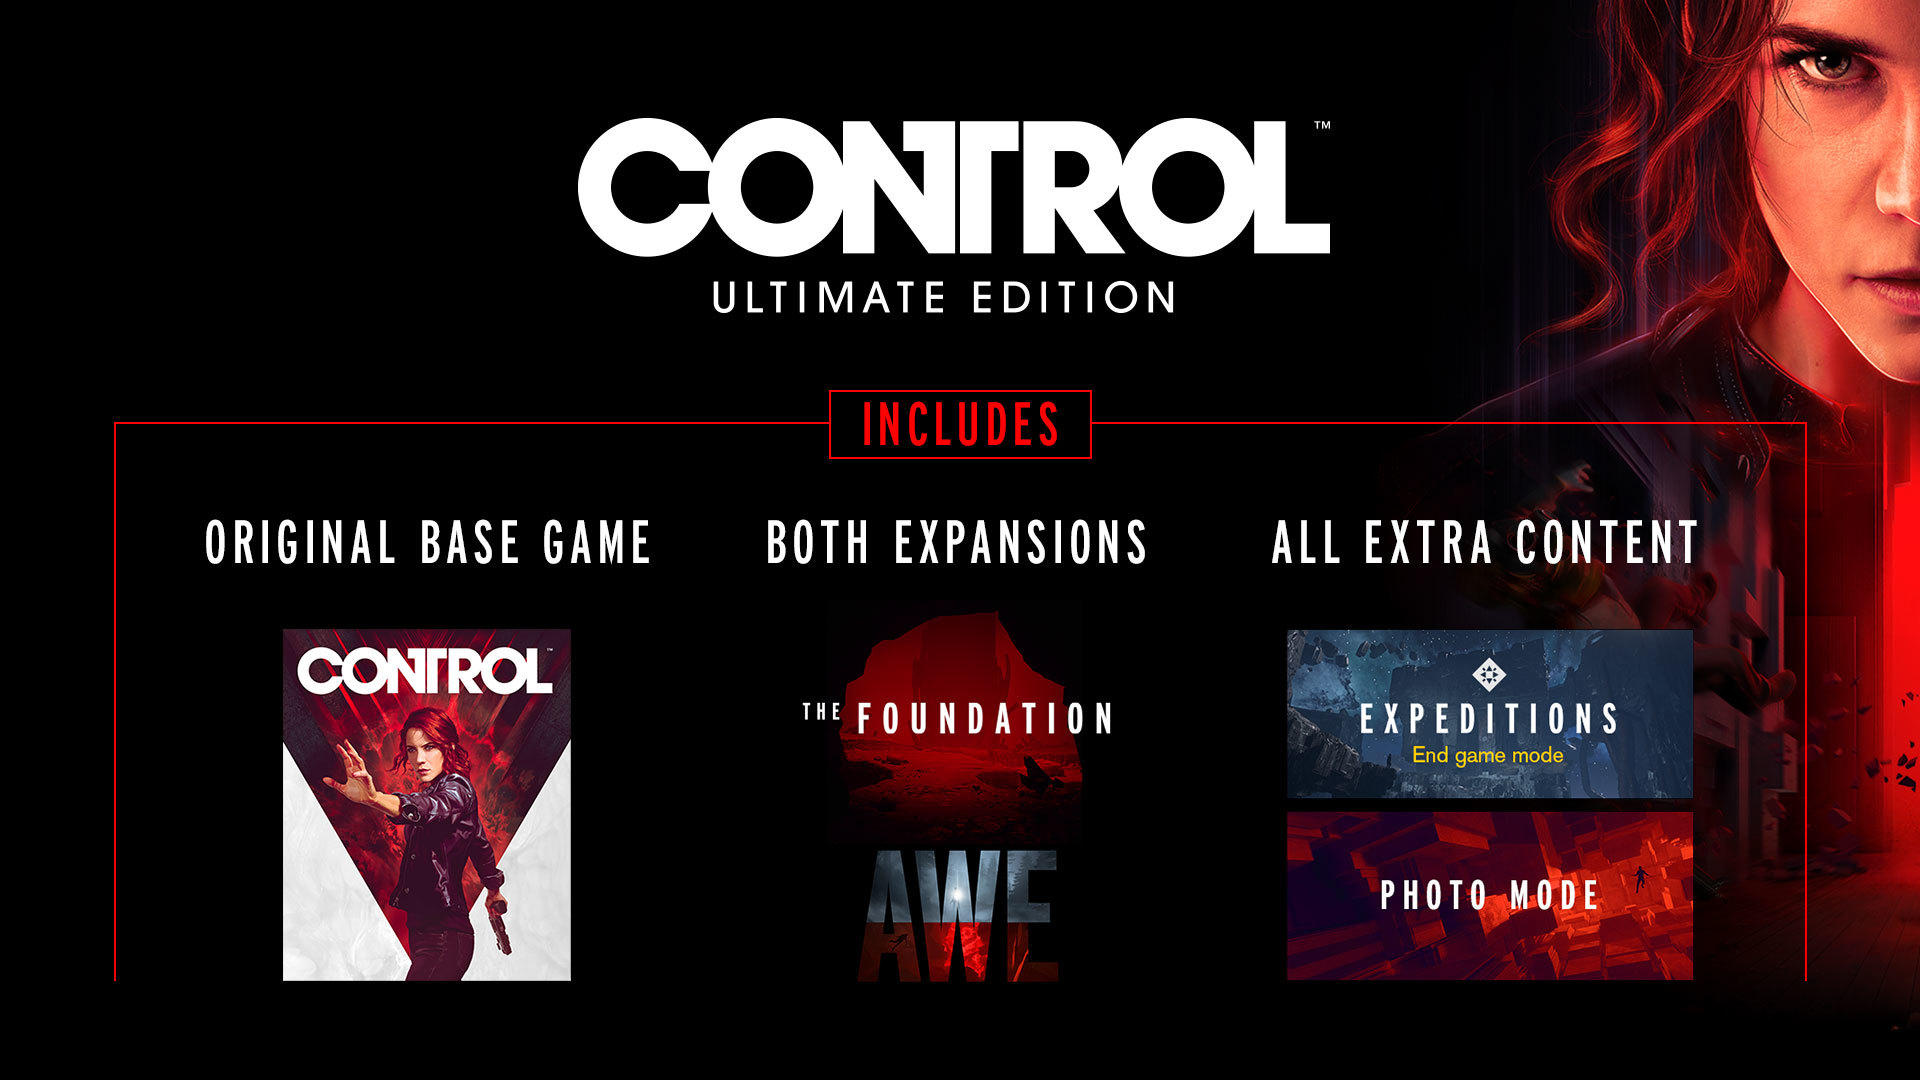 Control Ultimate Edition - Out Now!